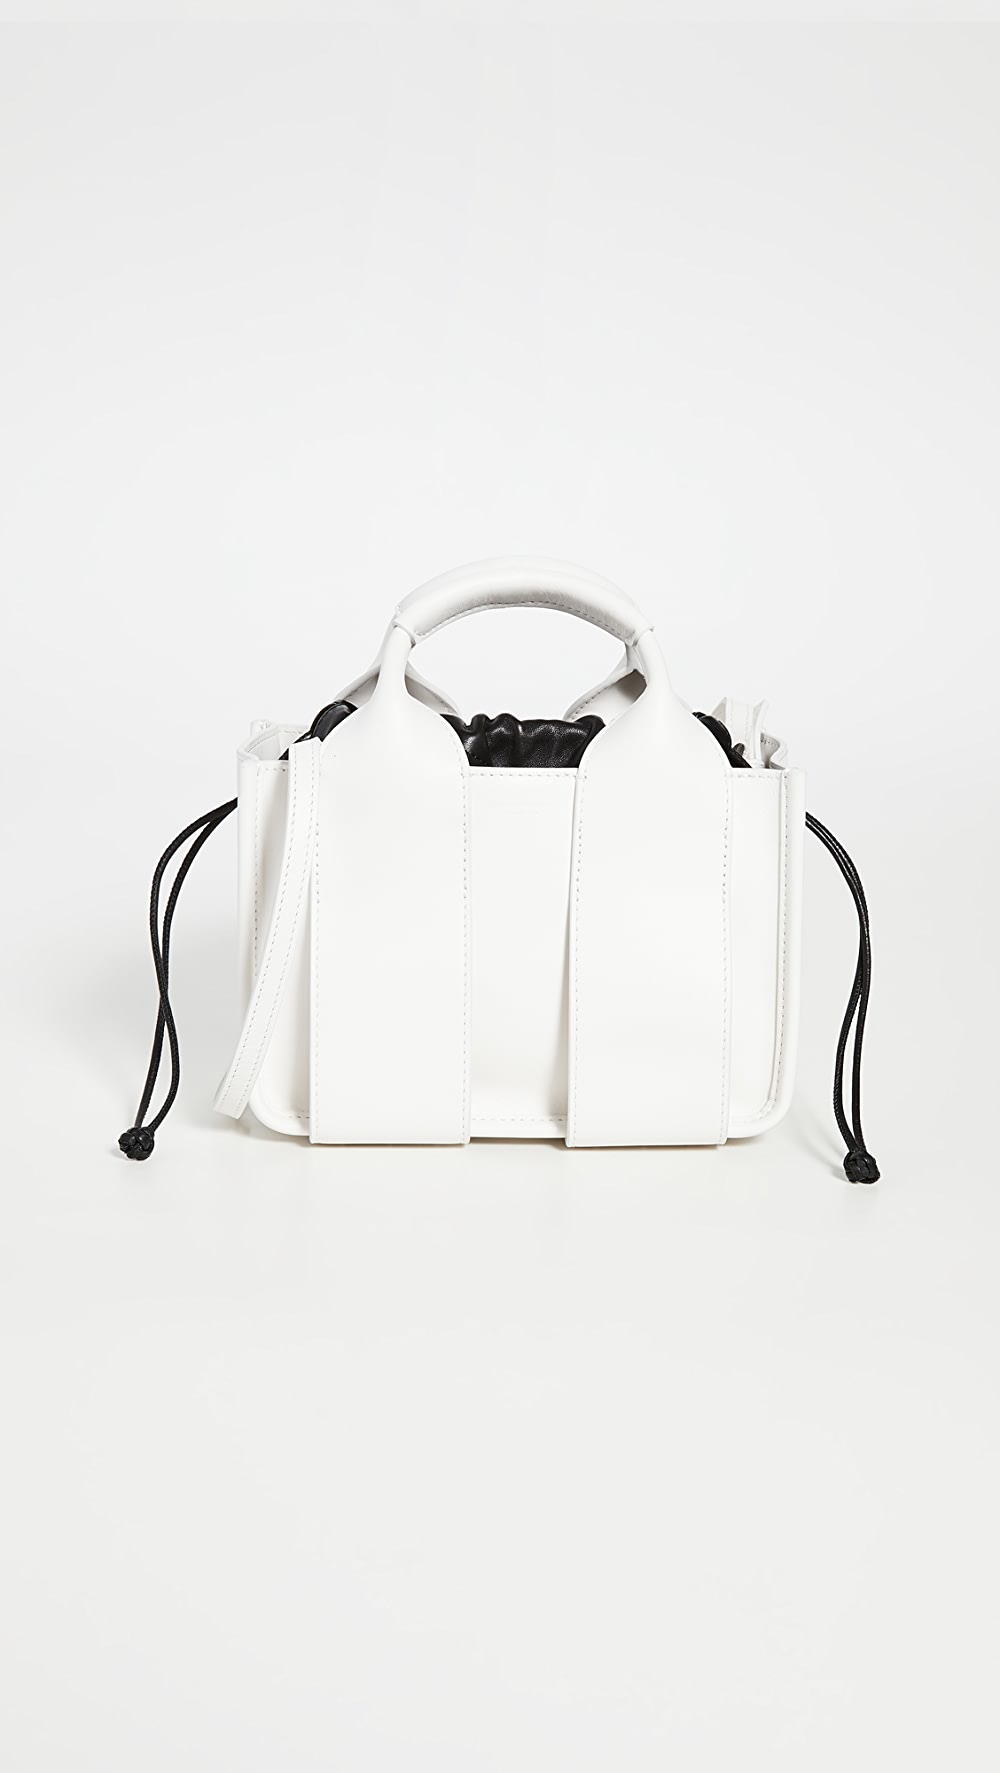 Constructive Alexander Wang - Rockie Small Tote Bright And Translucent In Appearance